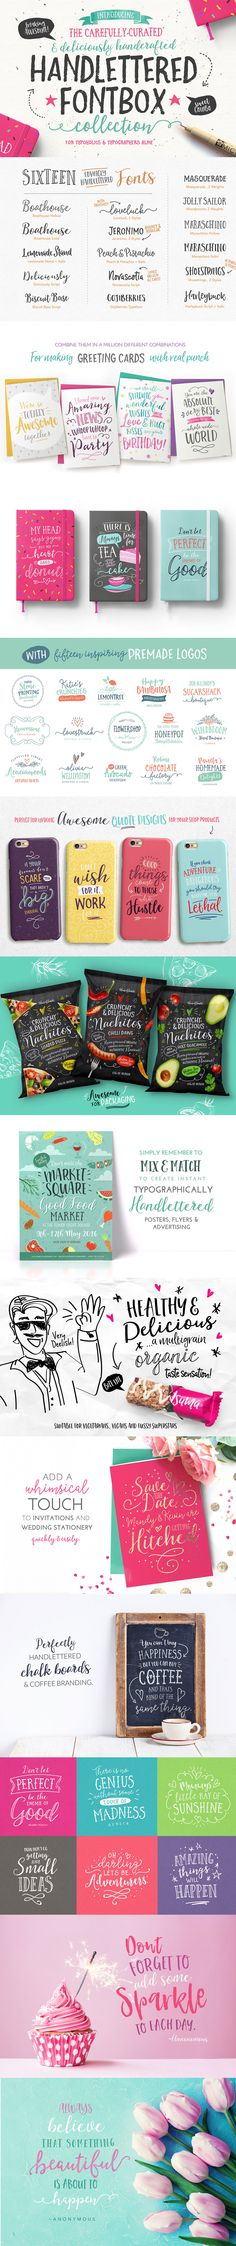 The #Handlettered Fontbox : $225 worth of #fonts packed tightly into a Sweeet $20 Pack - for a limited time!